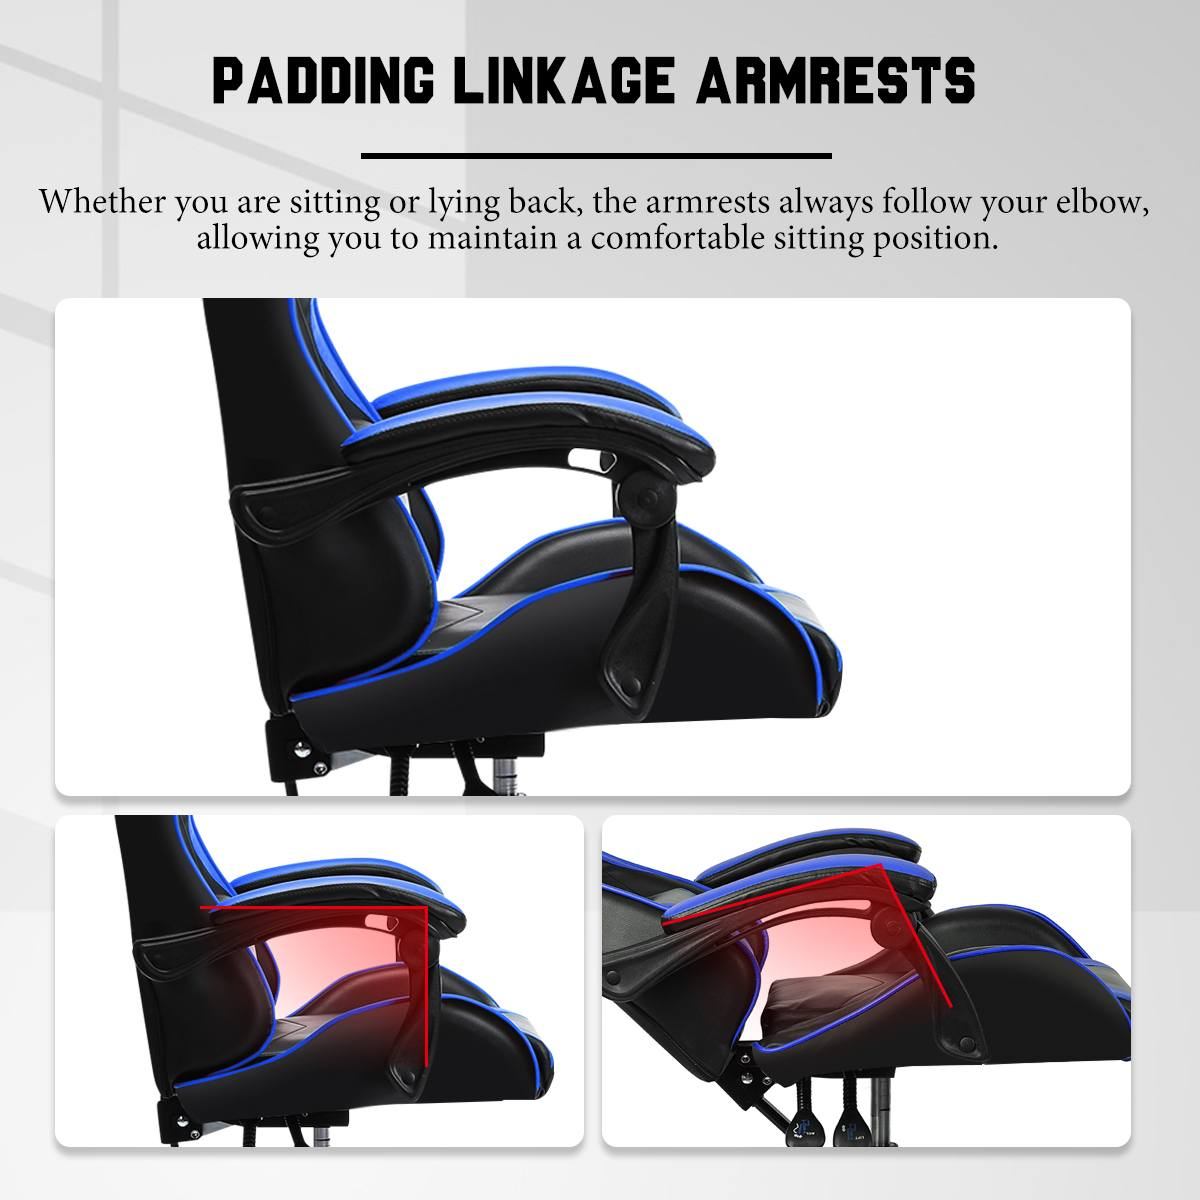 Hf3d4d230321848d5a3d9fa925228eddfj - Office Gaming Chair with Footrest Ergonomic Office Chairs Adjustable Swivel Leather High Back Computer Desk Chair with Headrest